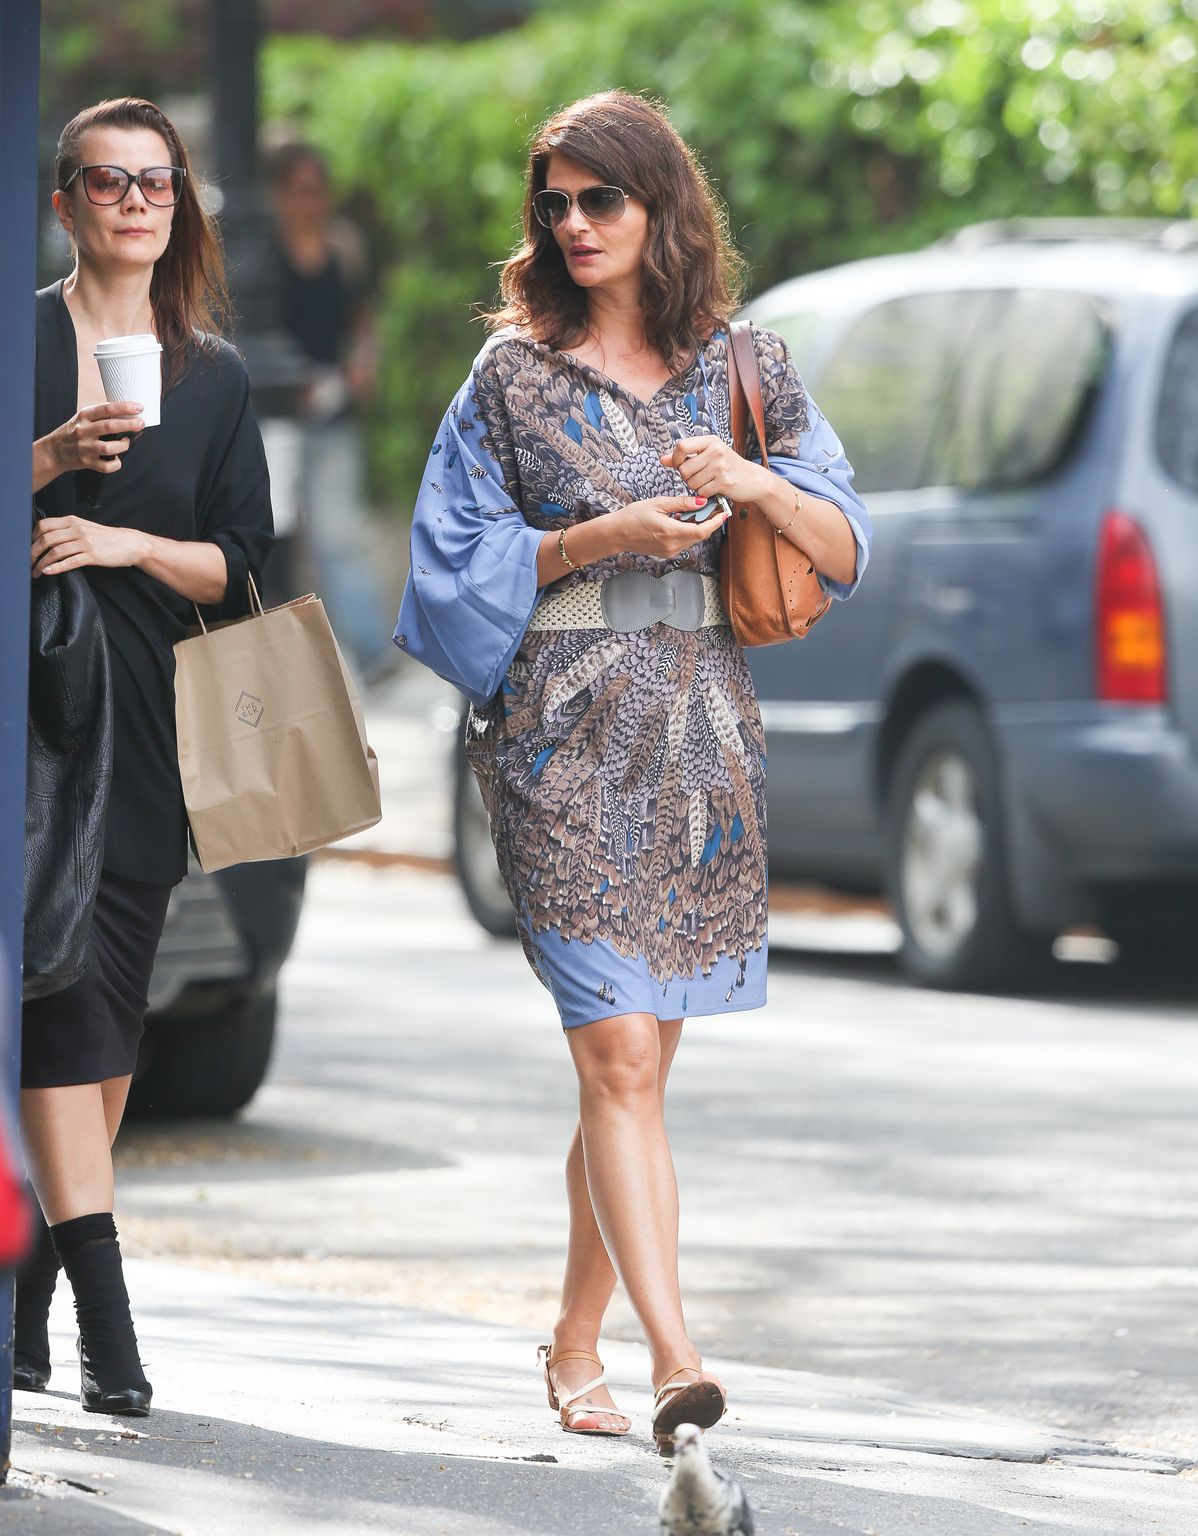 Helena Christensen in West Village